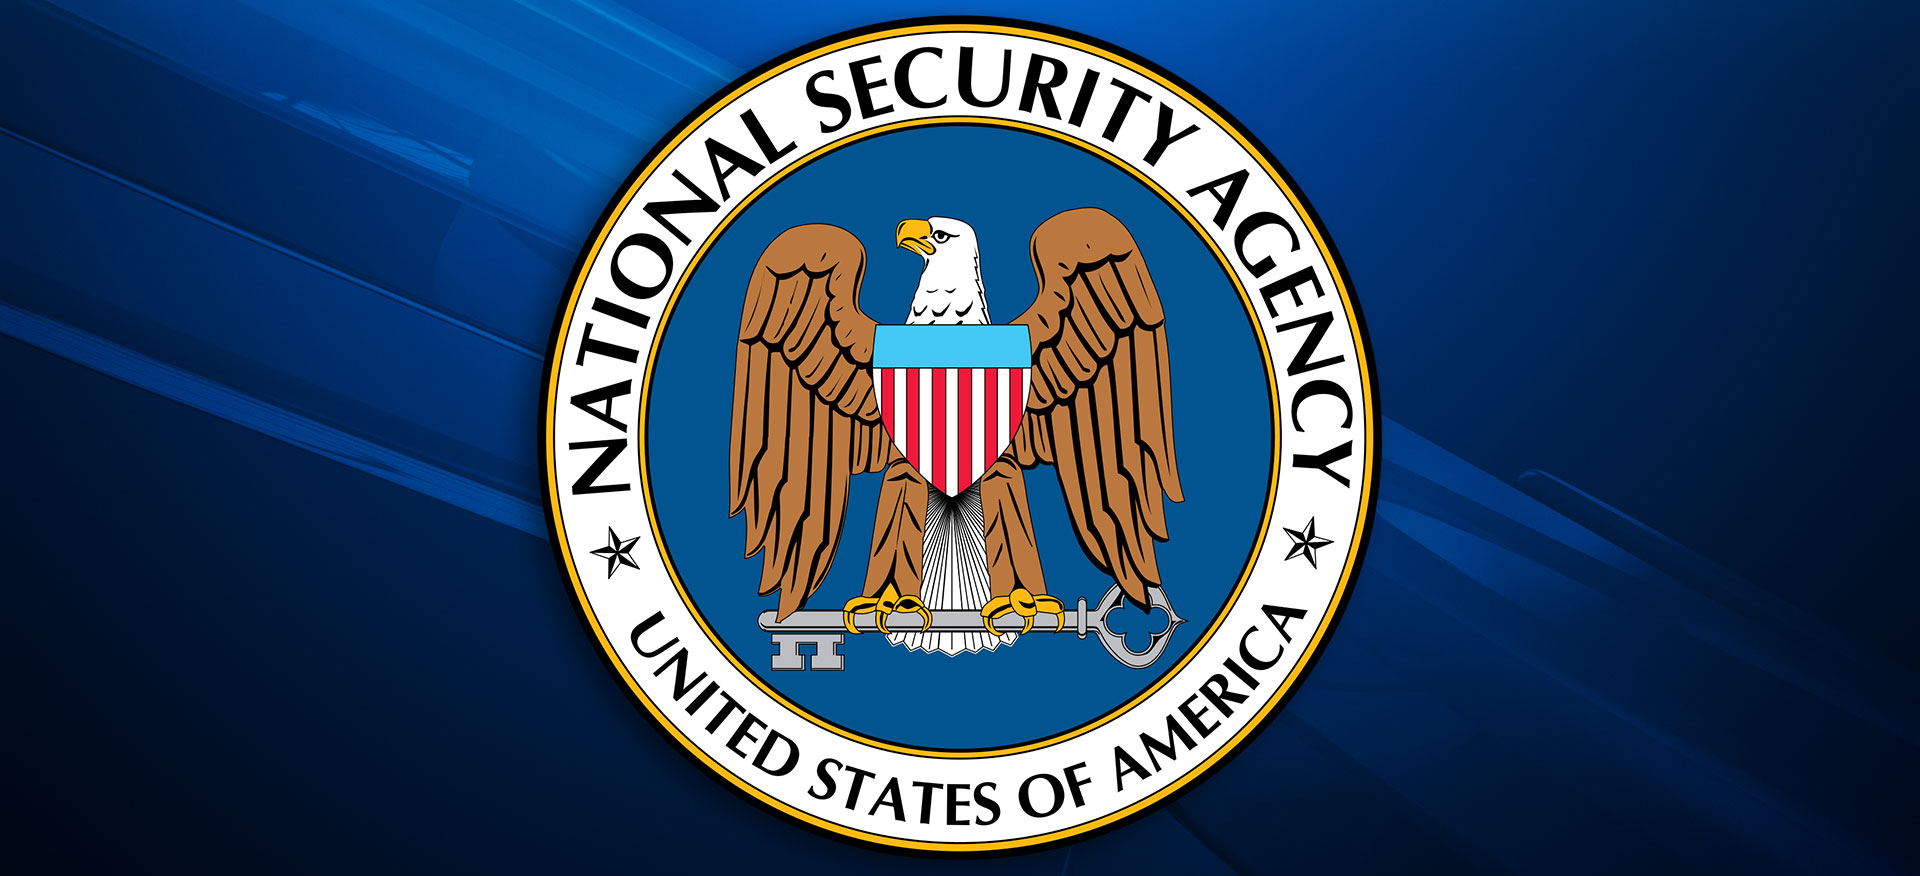 Agencies what is nsa